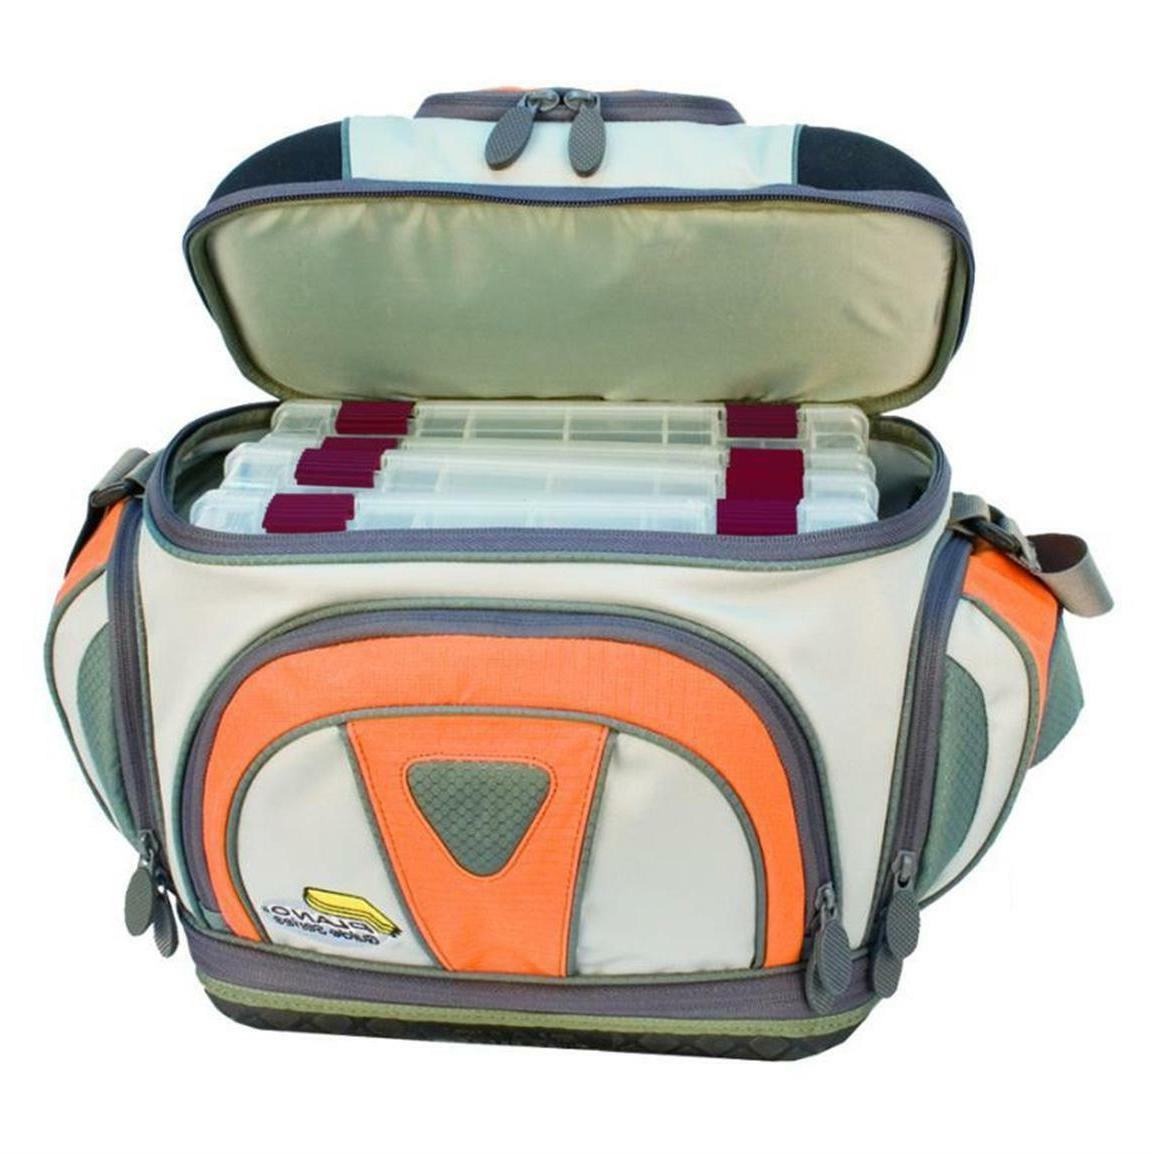 PLANO Duffle with 3600 Utility Storage Boxes